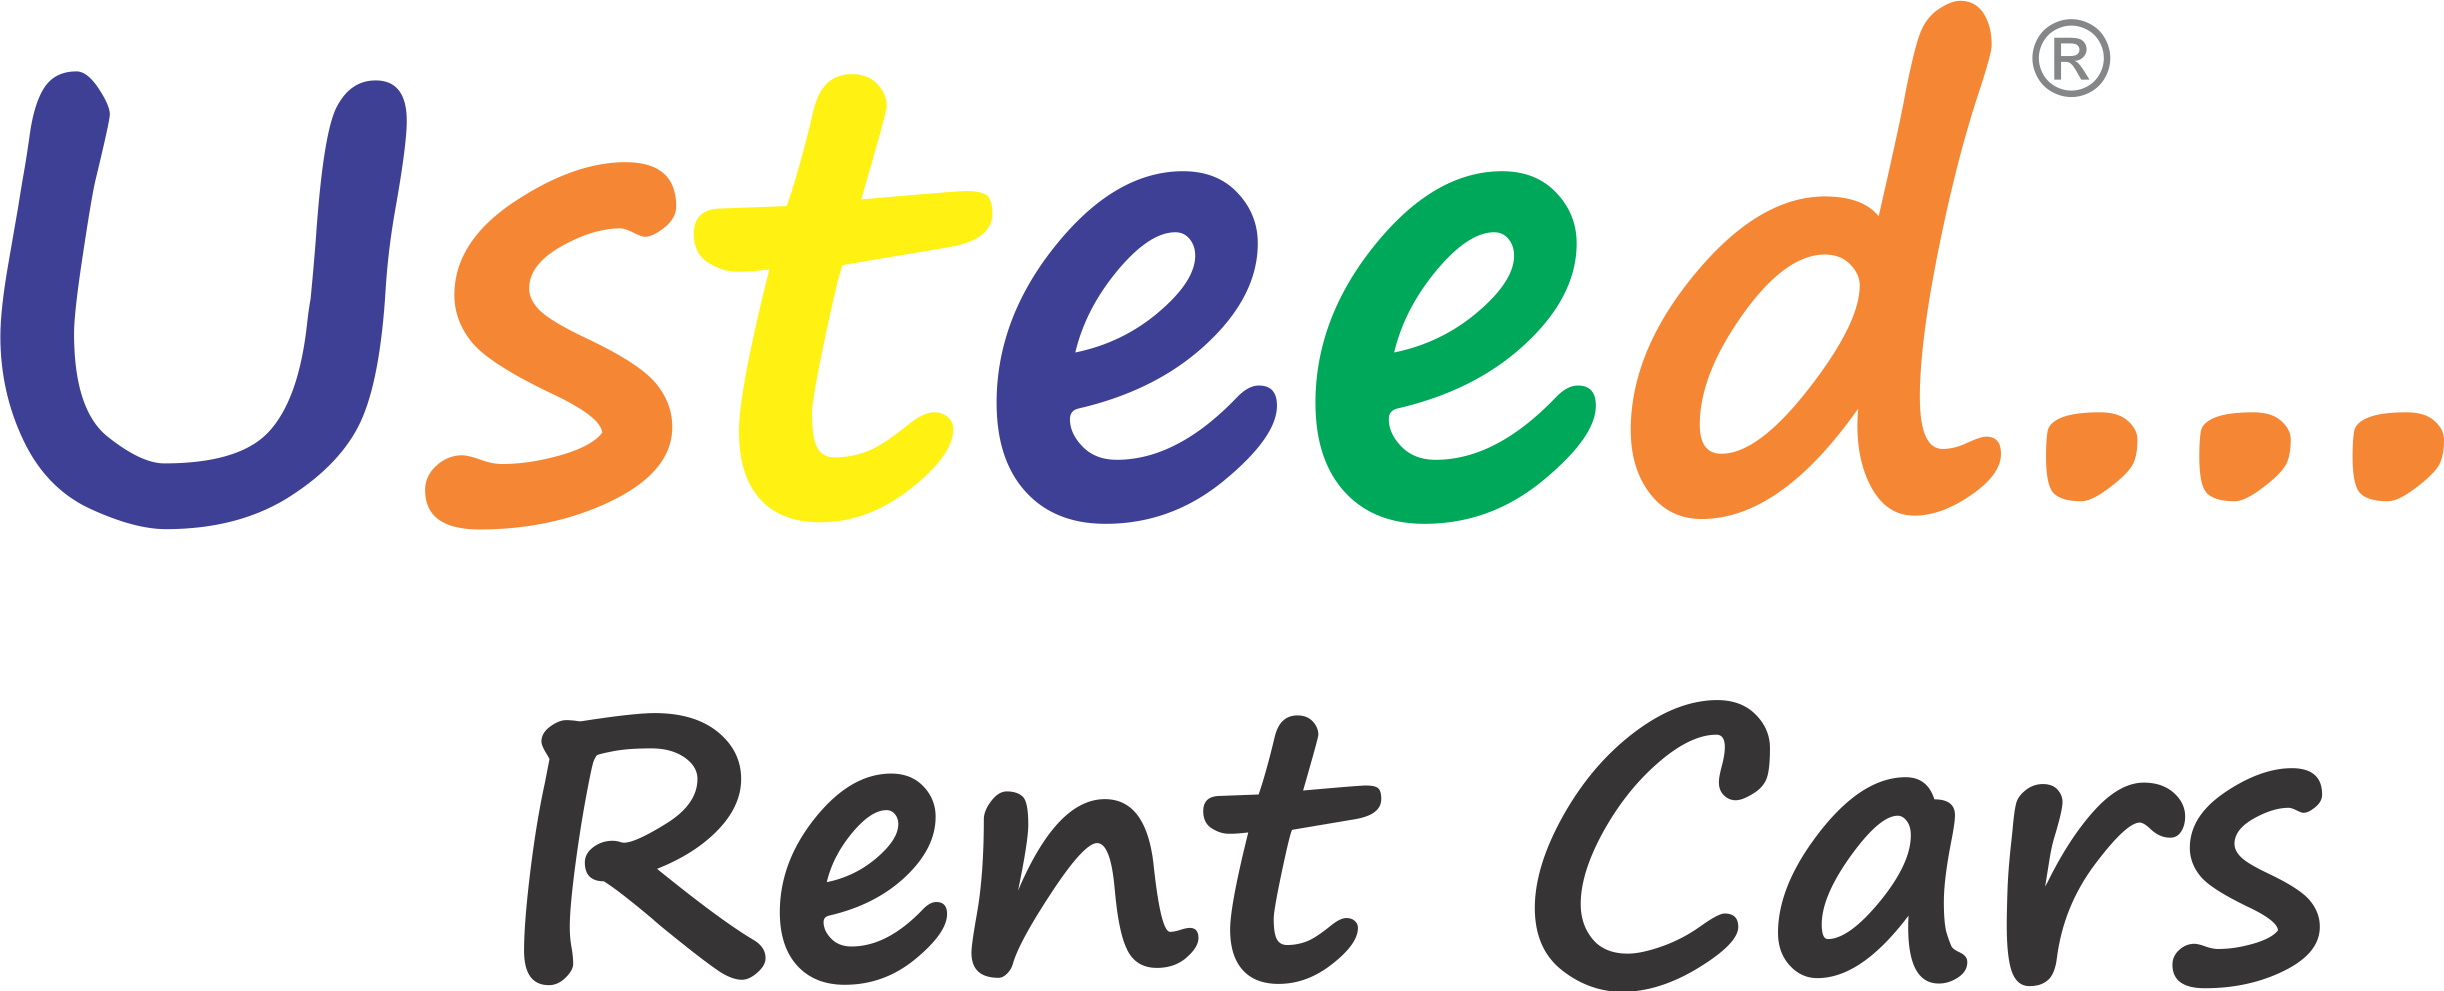 Usteed Rent Cars